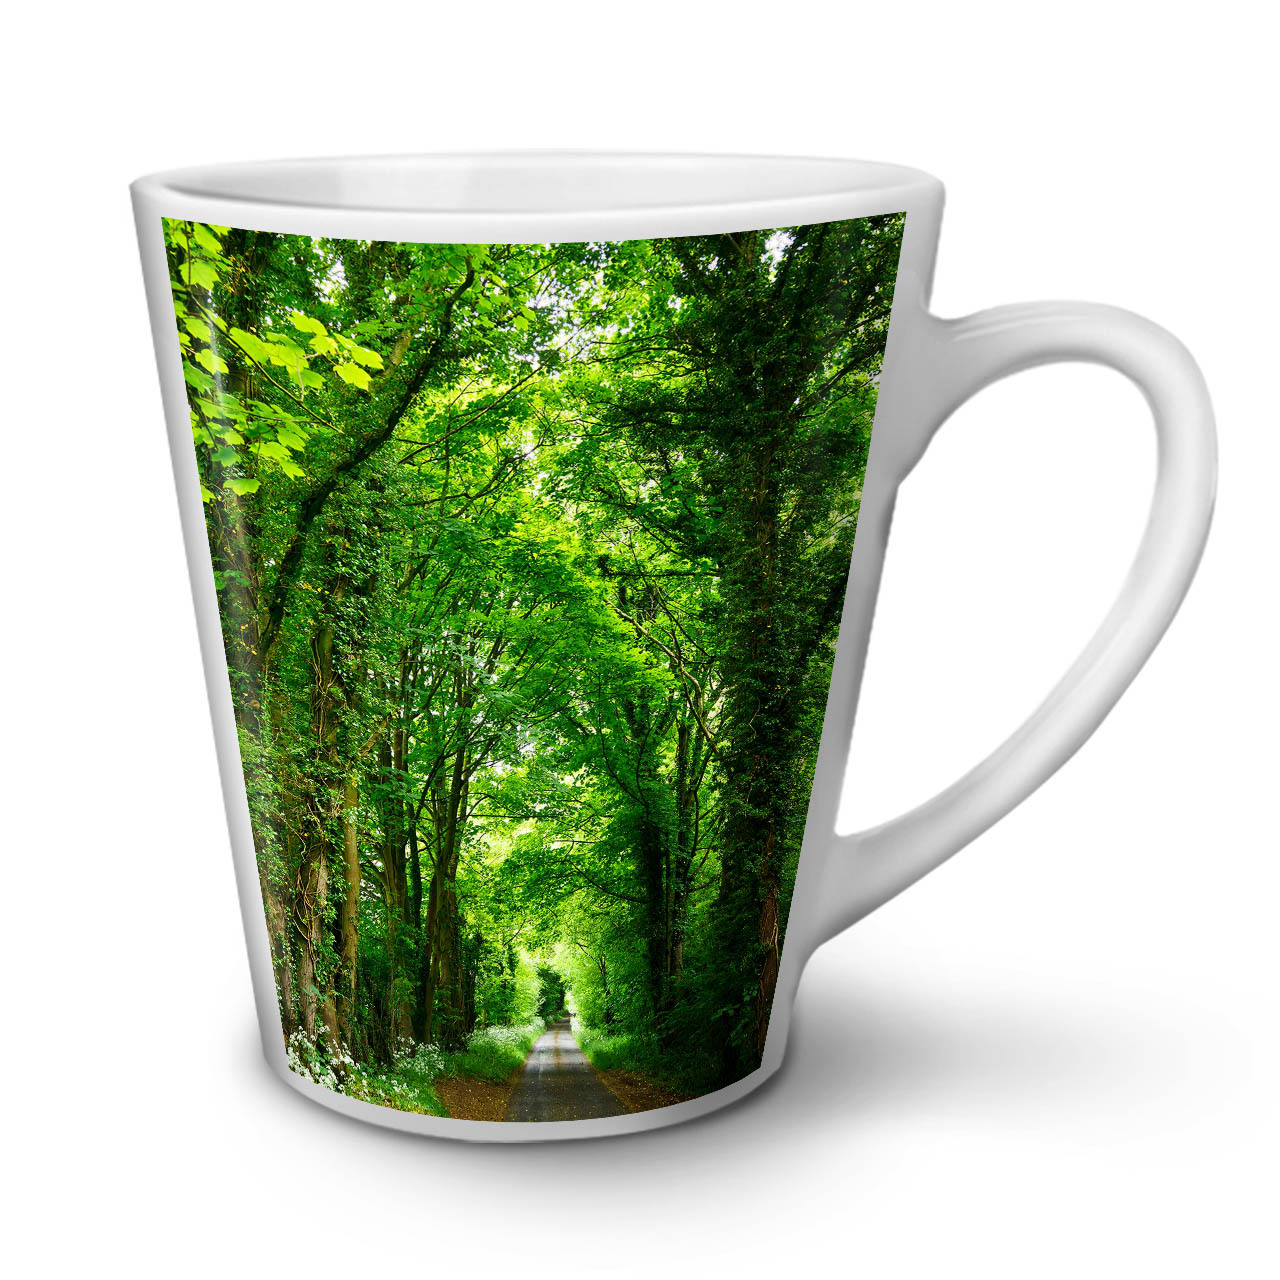 Primary image for Green Forest Road NEW White Tea Coffee Latte Mug 12 17 oz | Wellcoda